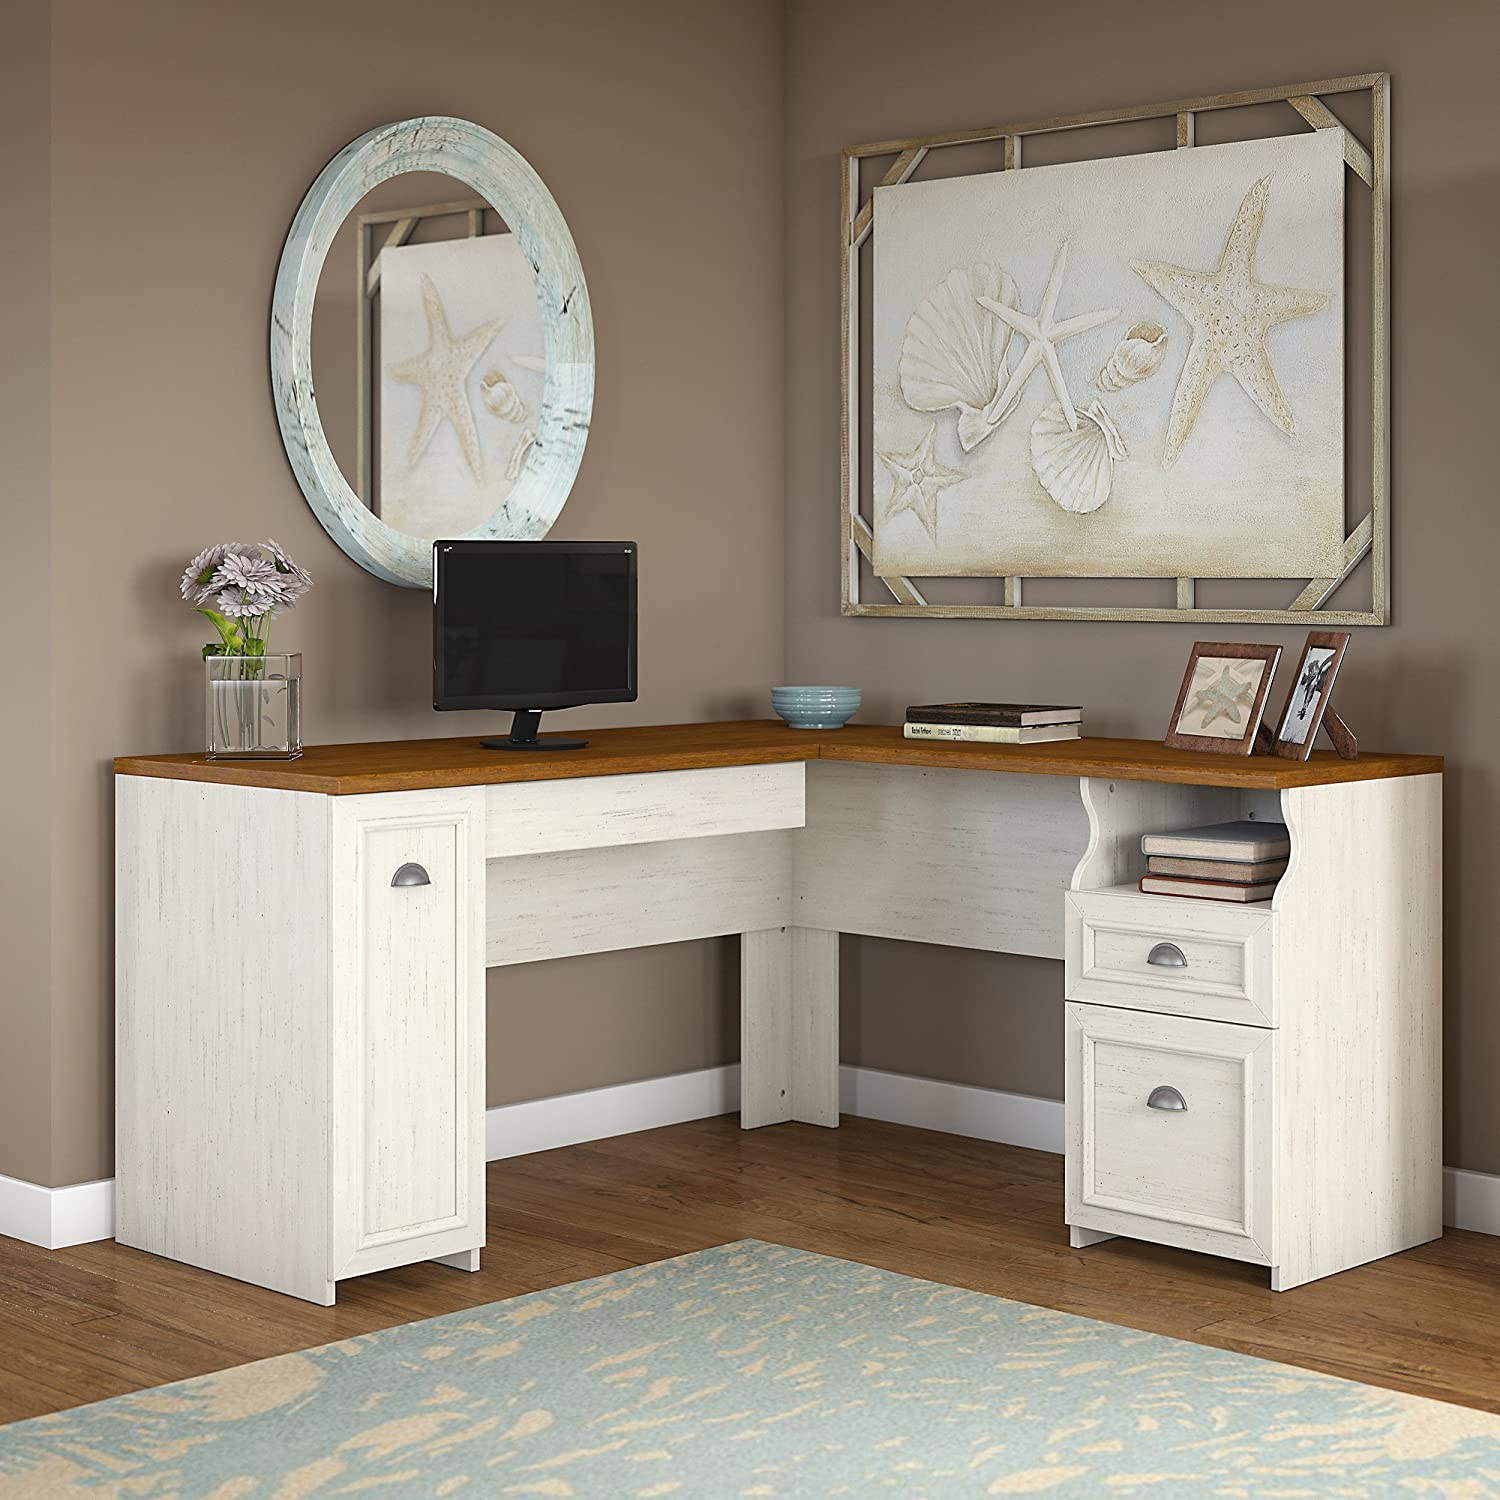 Fairview L Shaped Desk In Antique White. By Bush Furniture